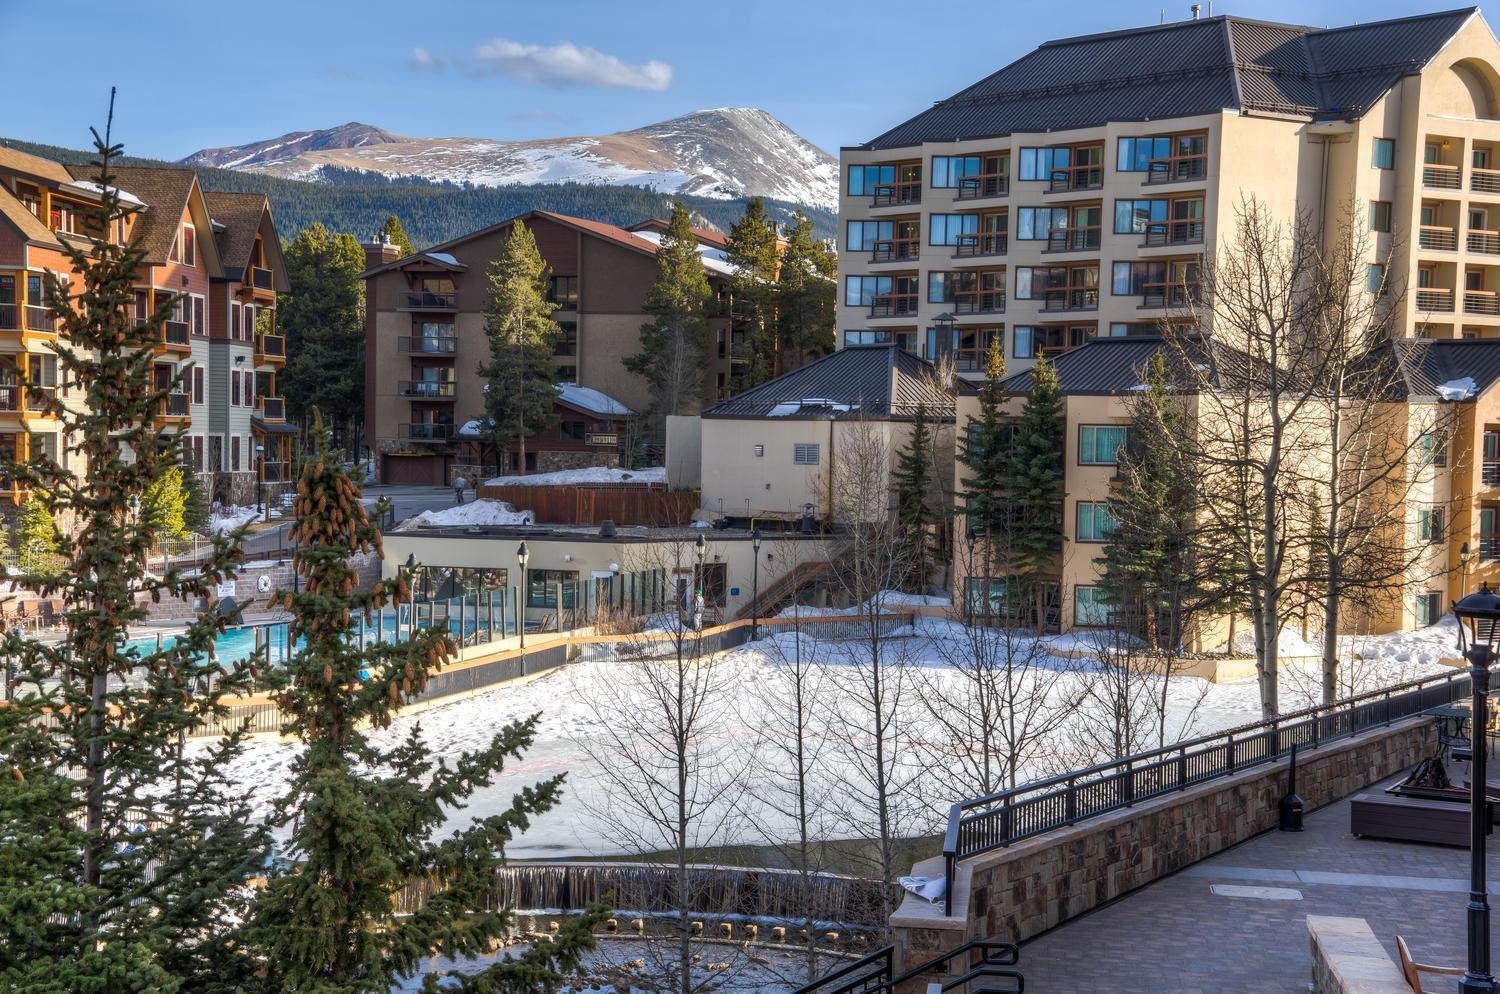 Lovely bright condo with Peak 9 ski-in/ski-out accesss